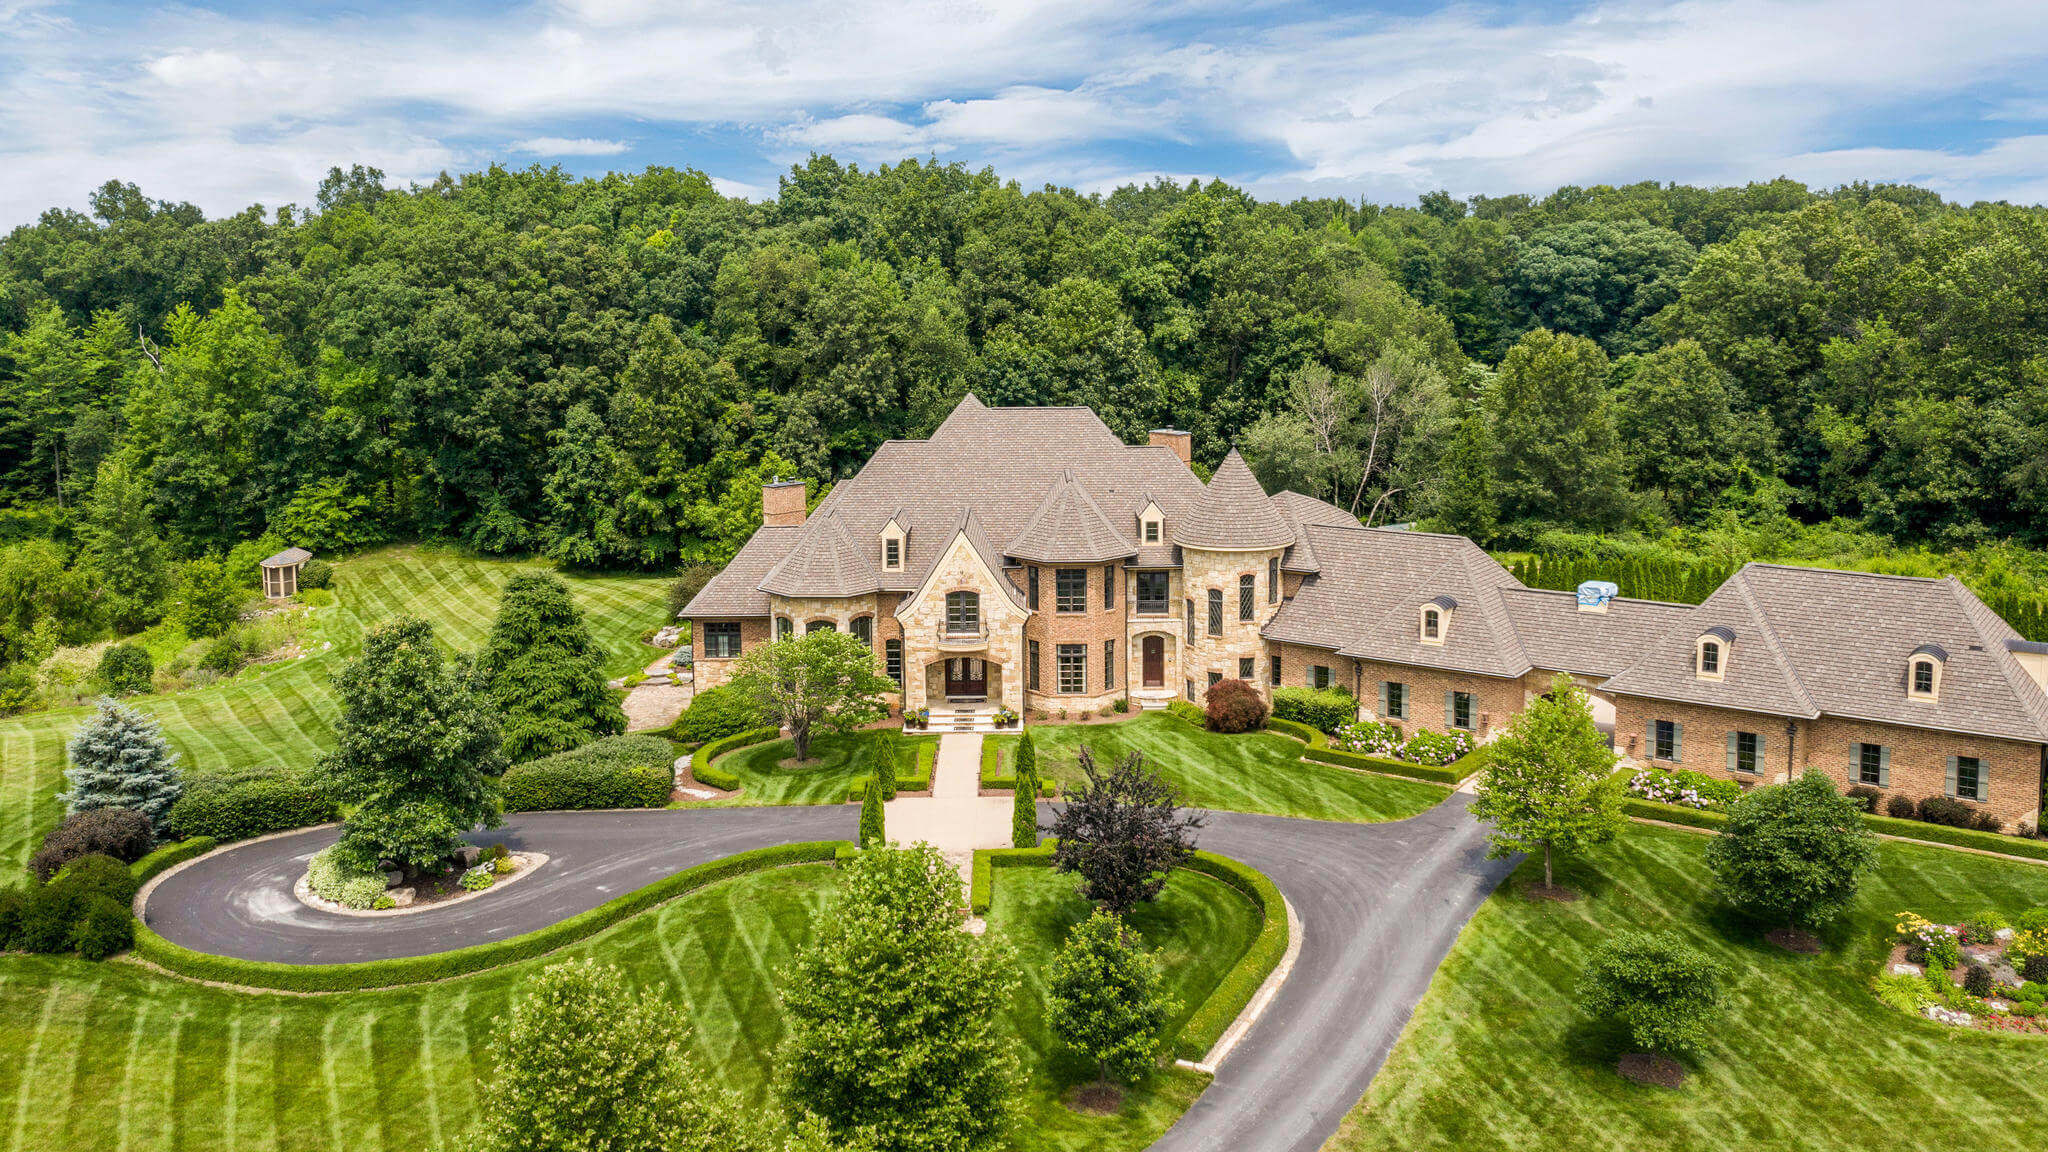 11479 Clyde - Hartland, Michigan - $2,950,000 USD